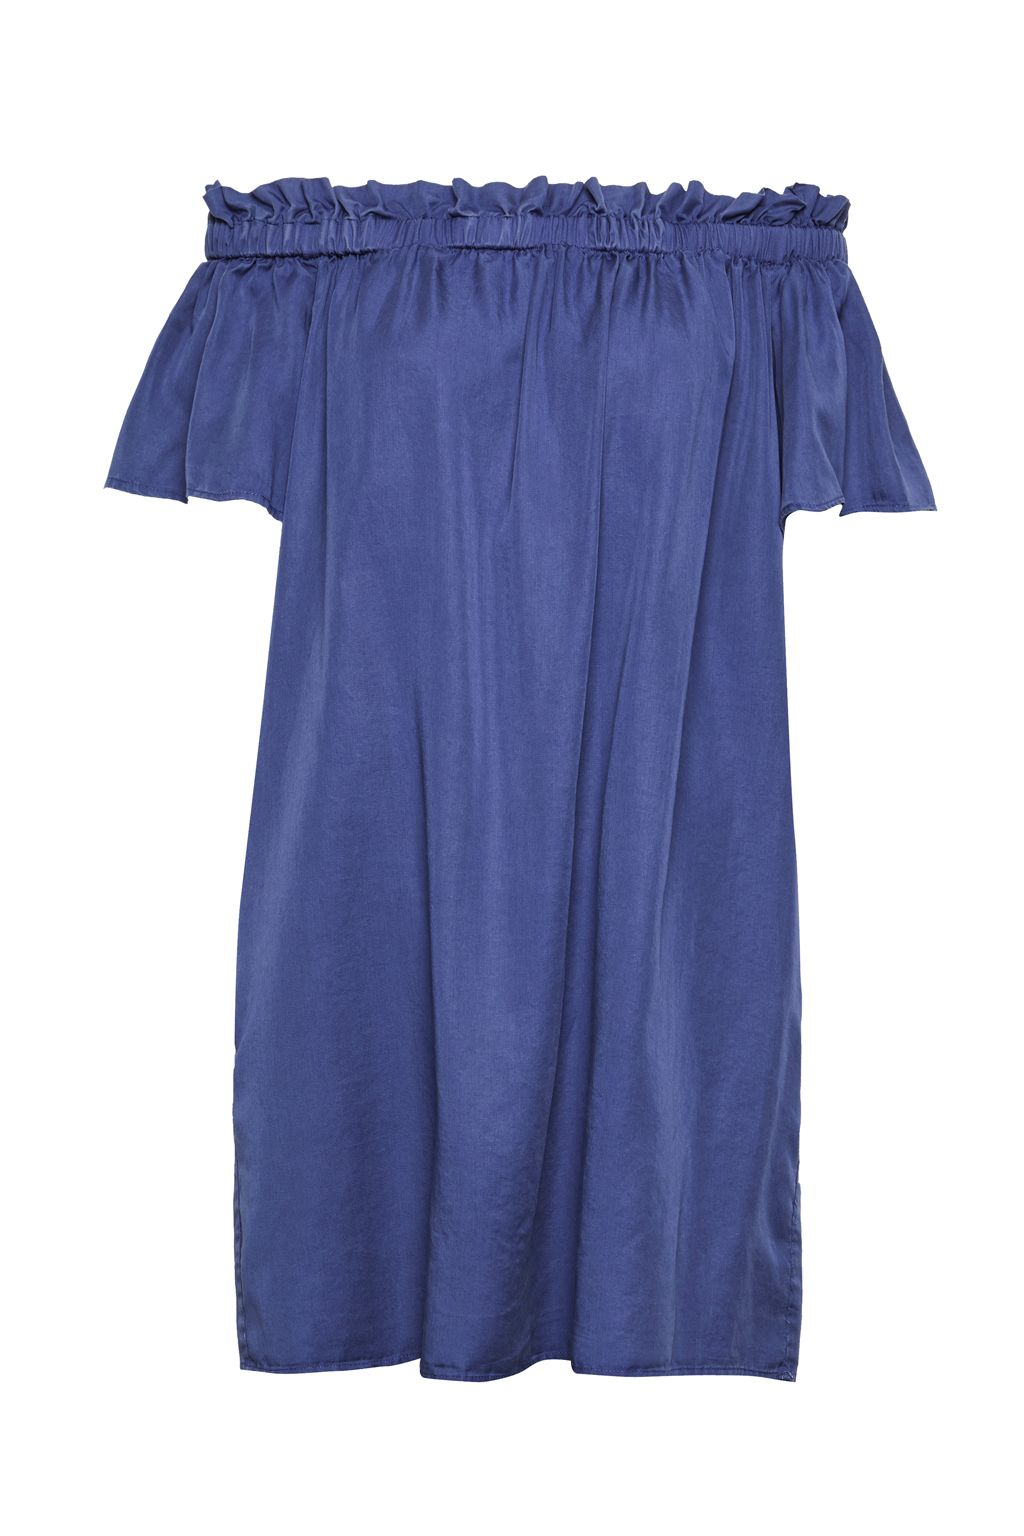 French Connection Stayton Ruffle Denim Bardot Dress, Blue